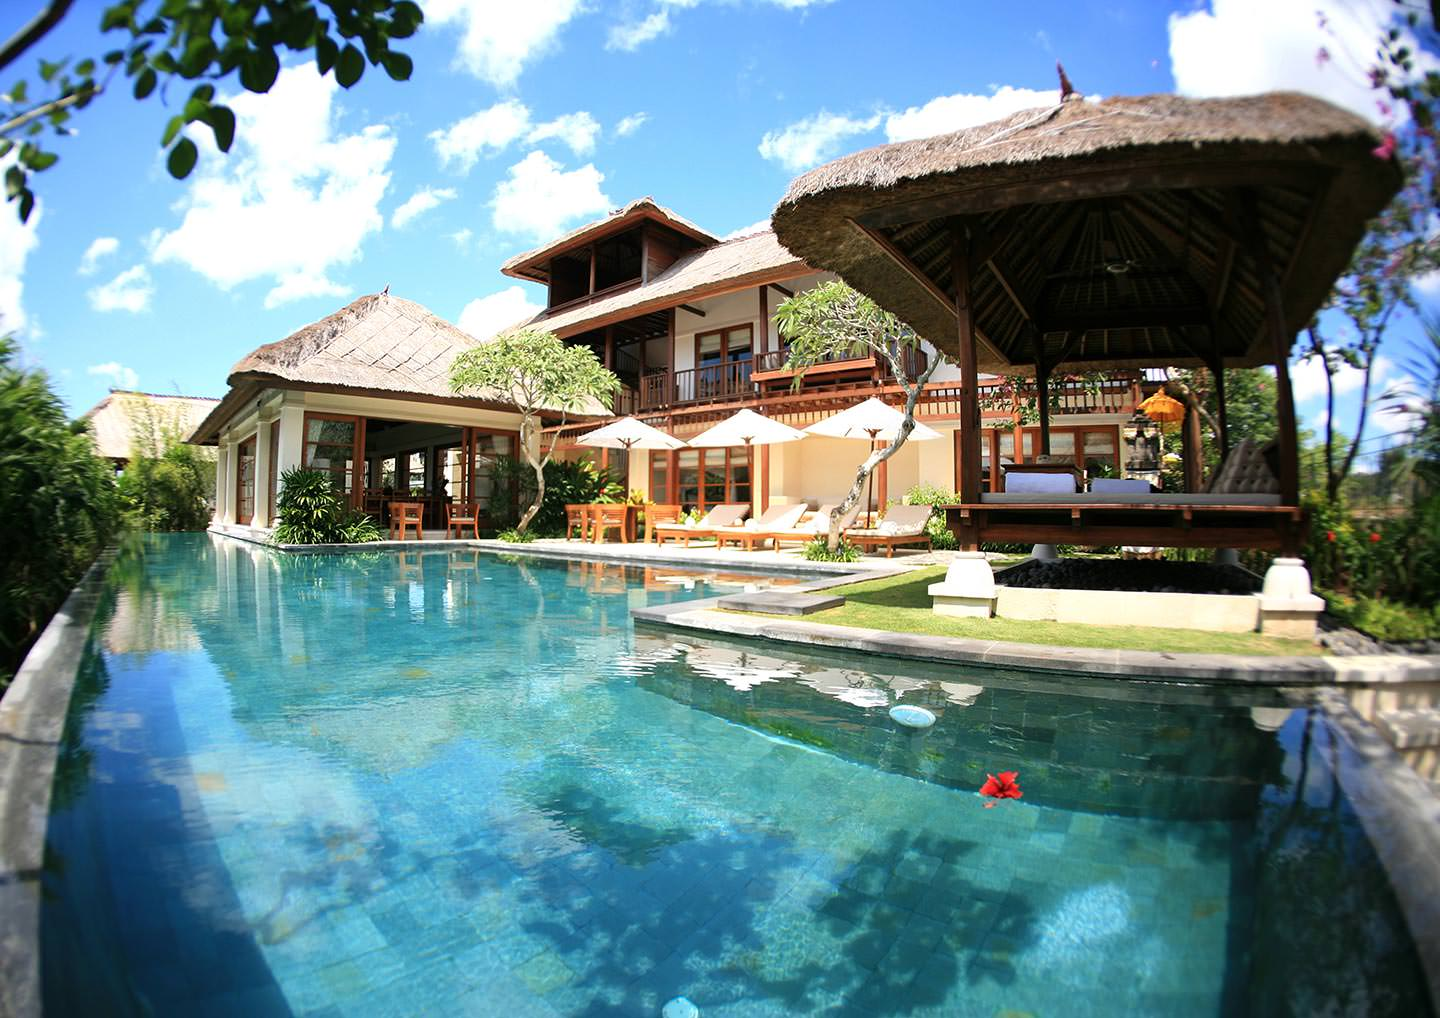 5 Star Resort in Jimbaran Bay